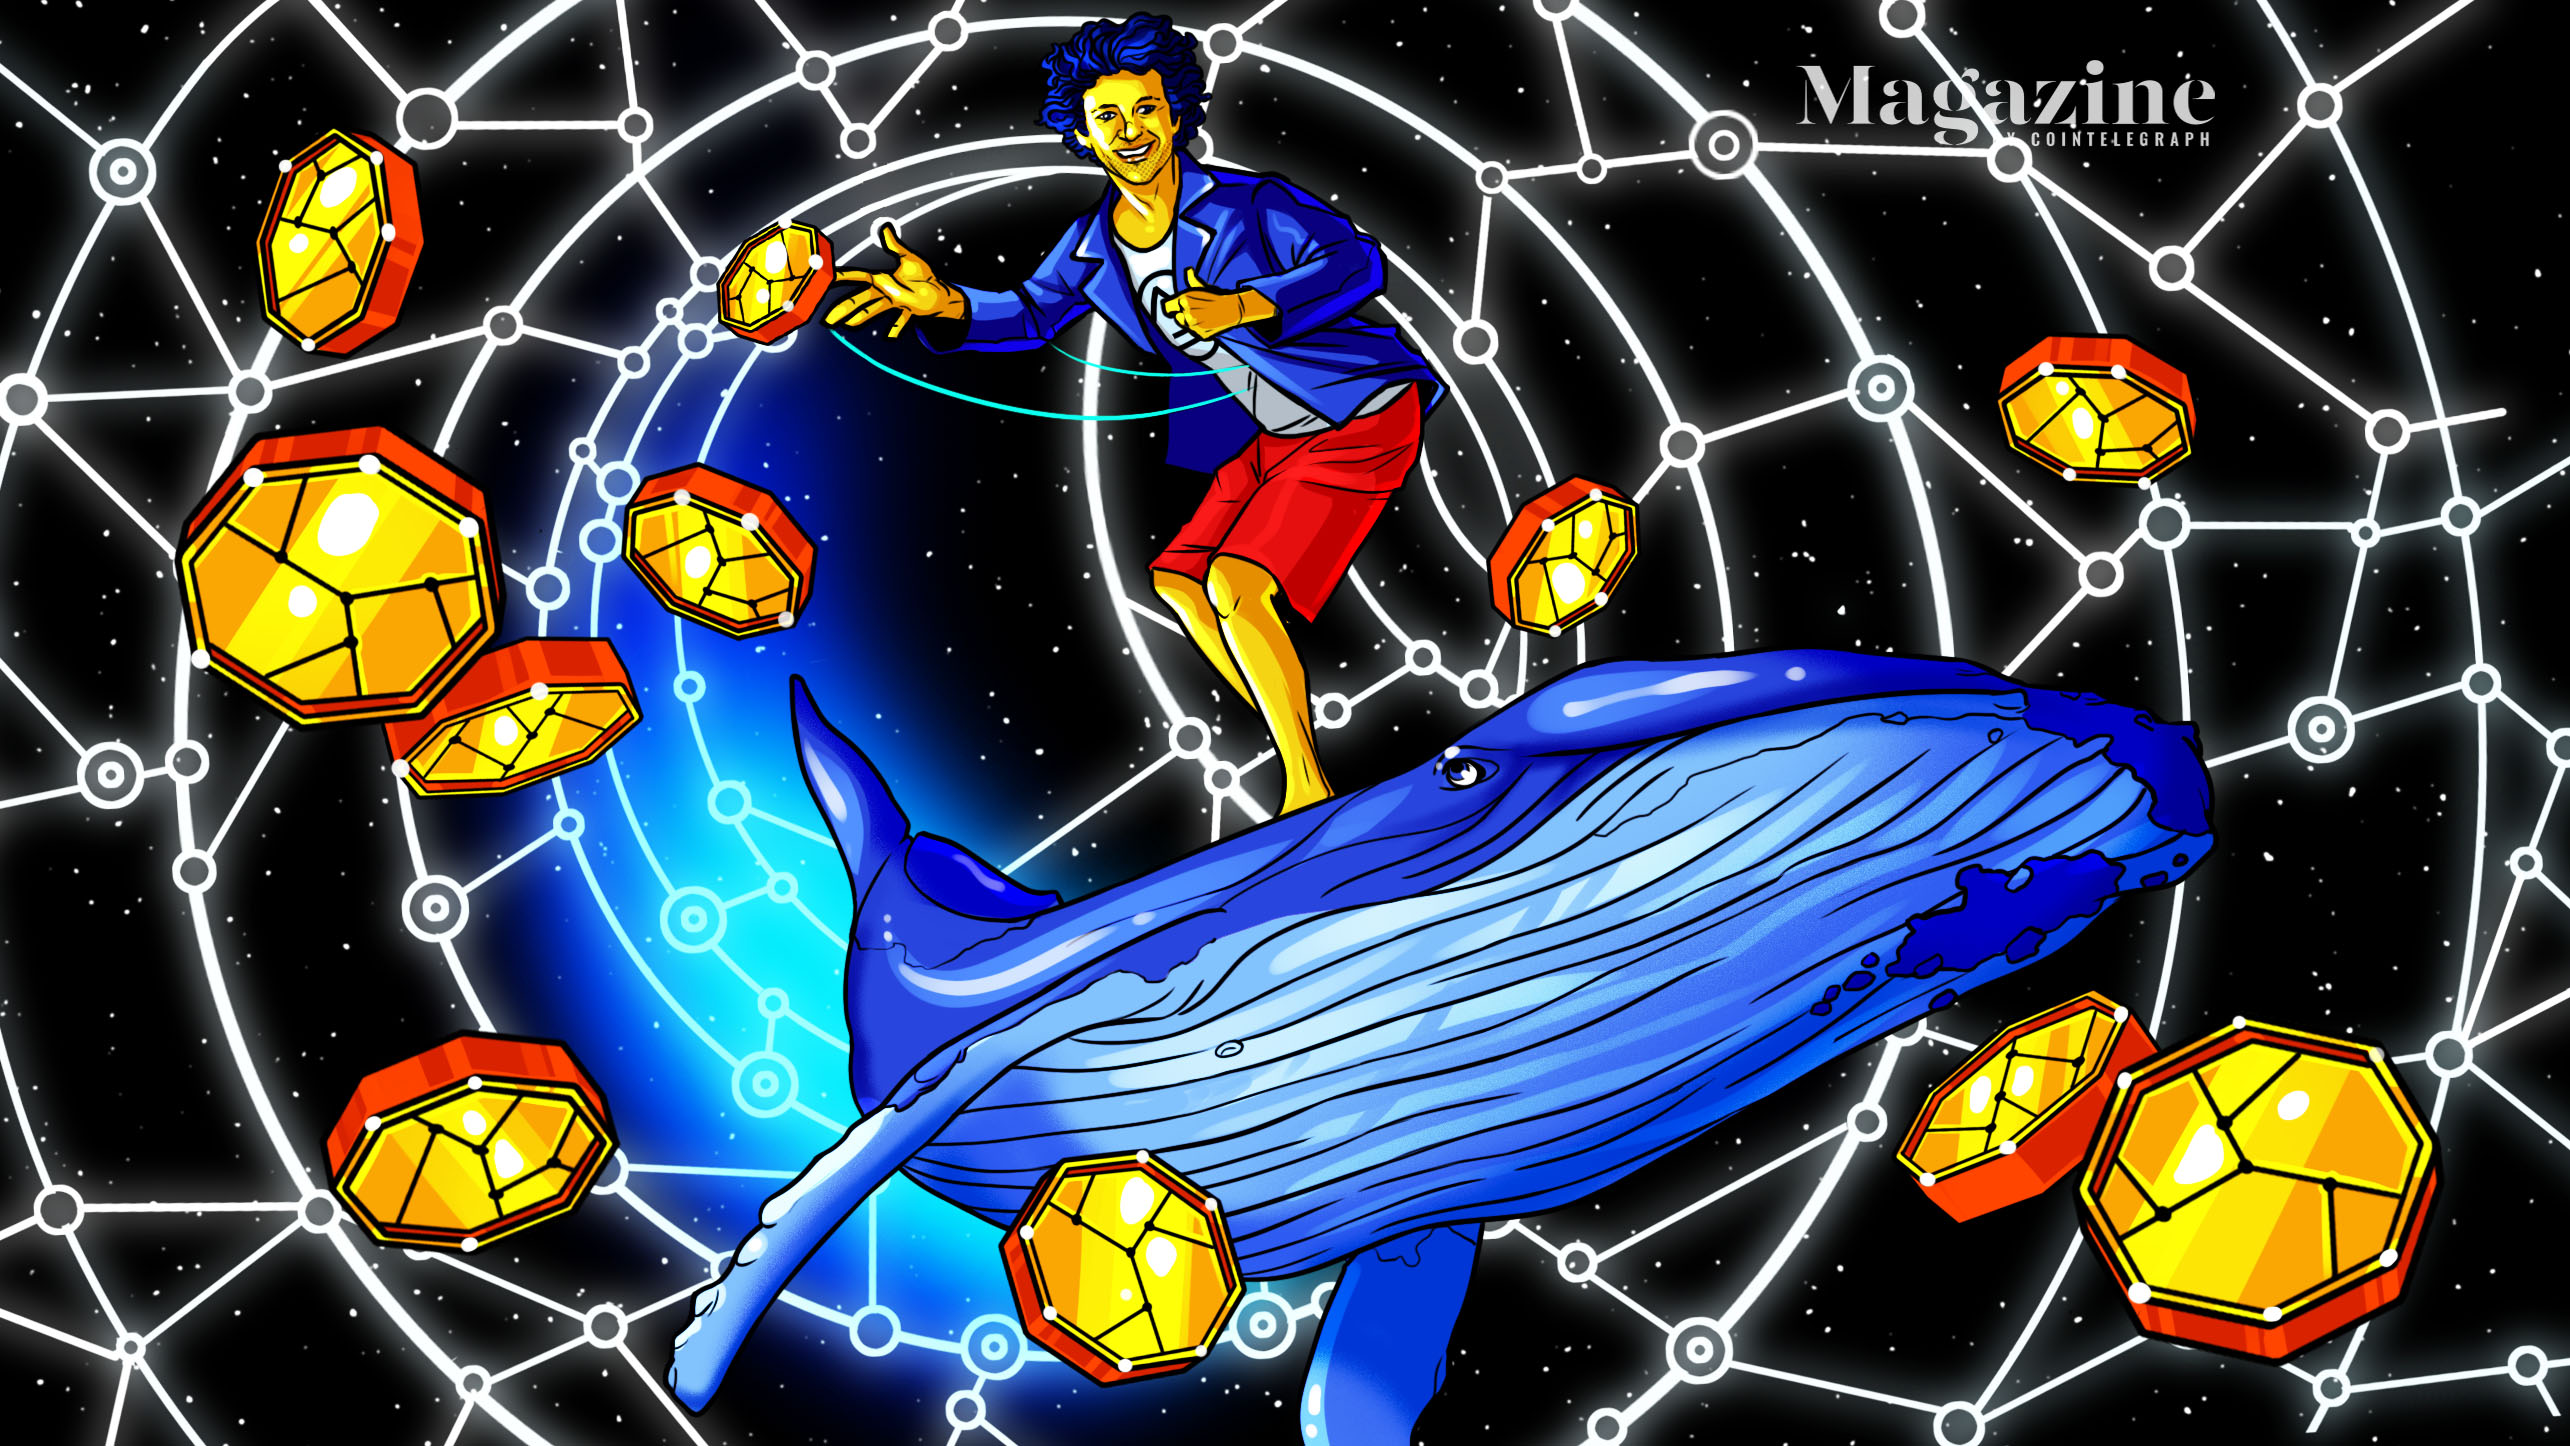 Sam Bankman-Fried: The crypto whale who wants to give billions away